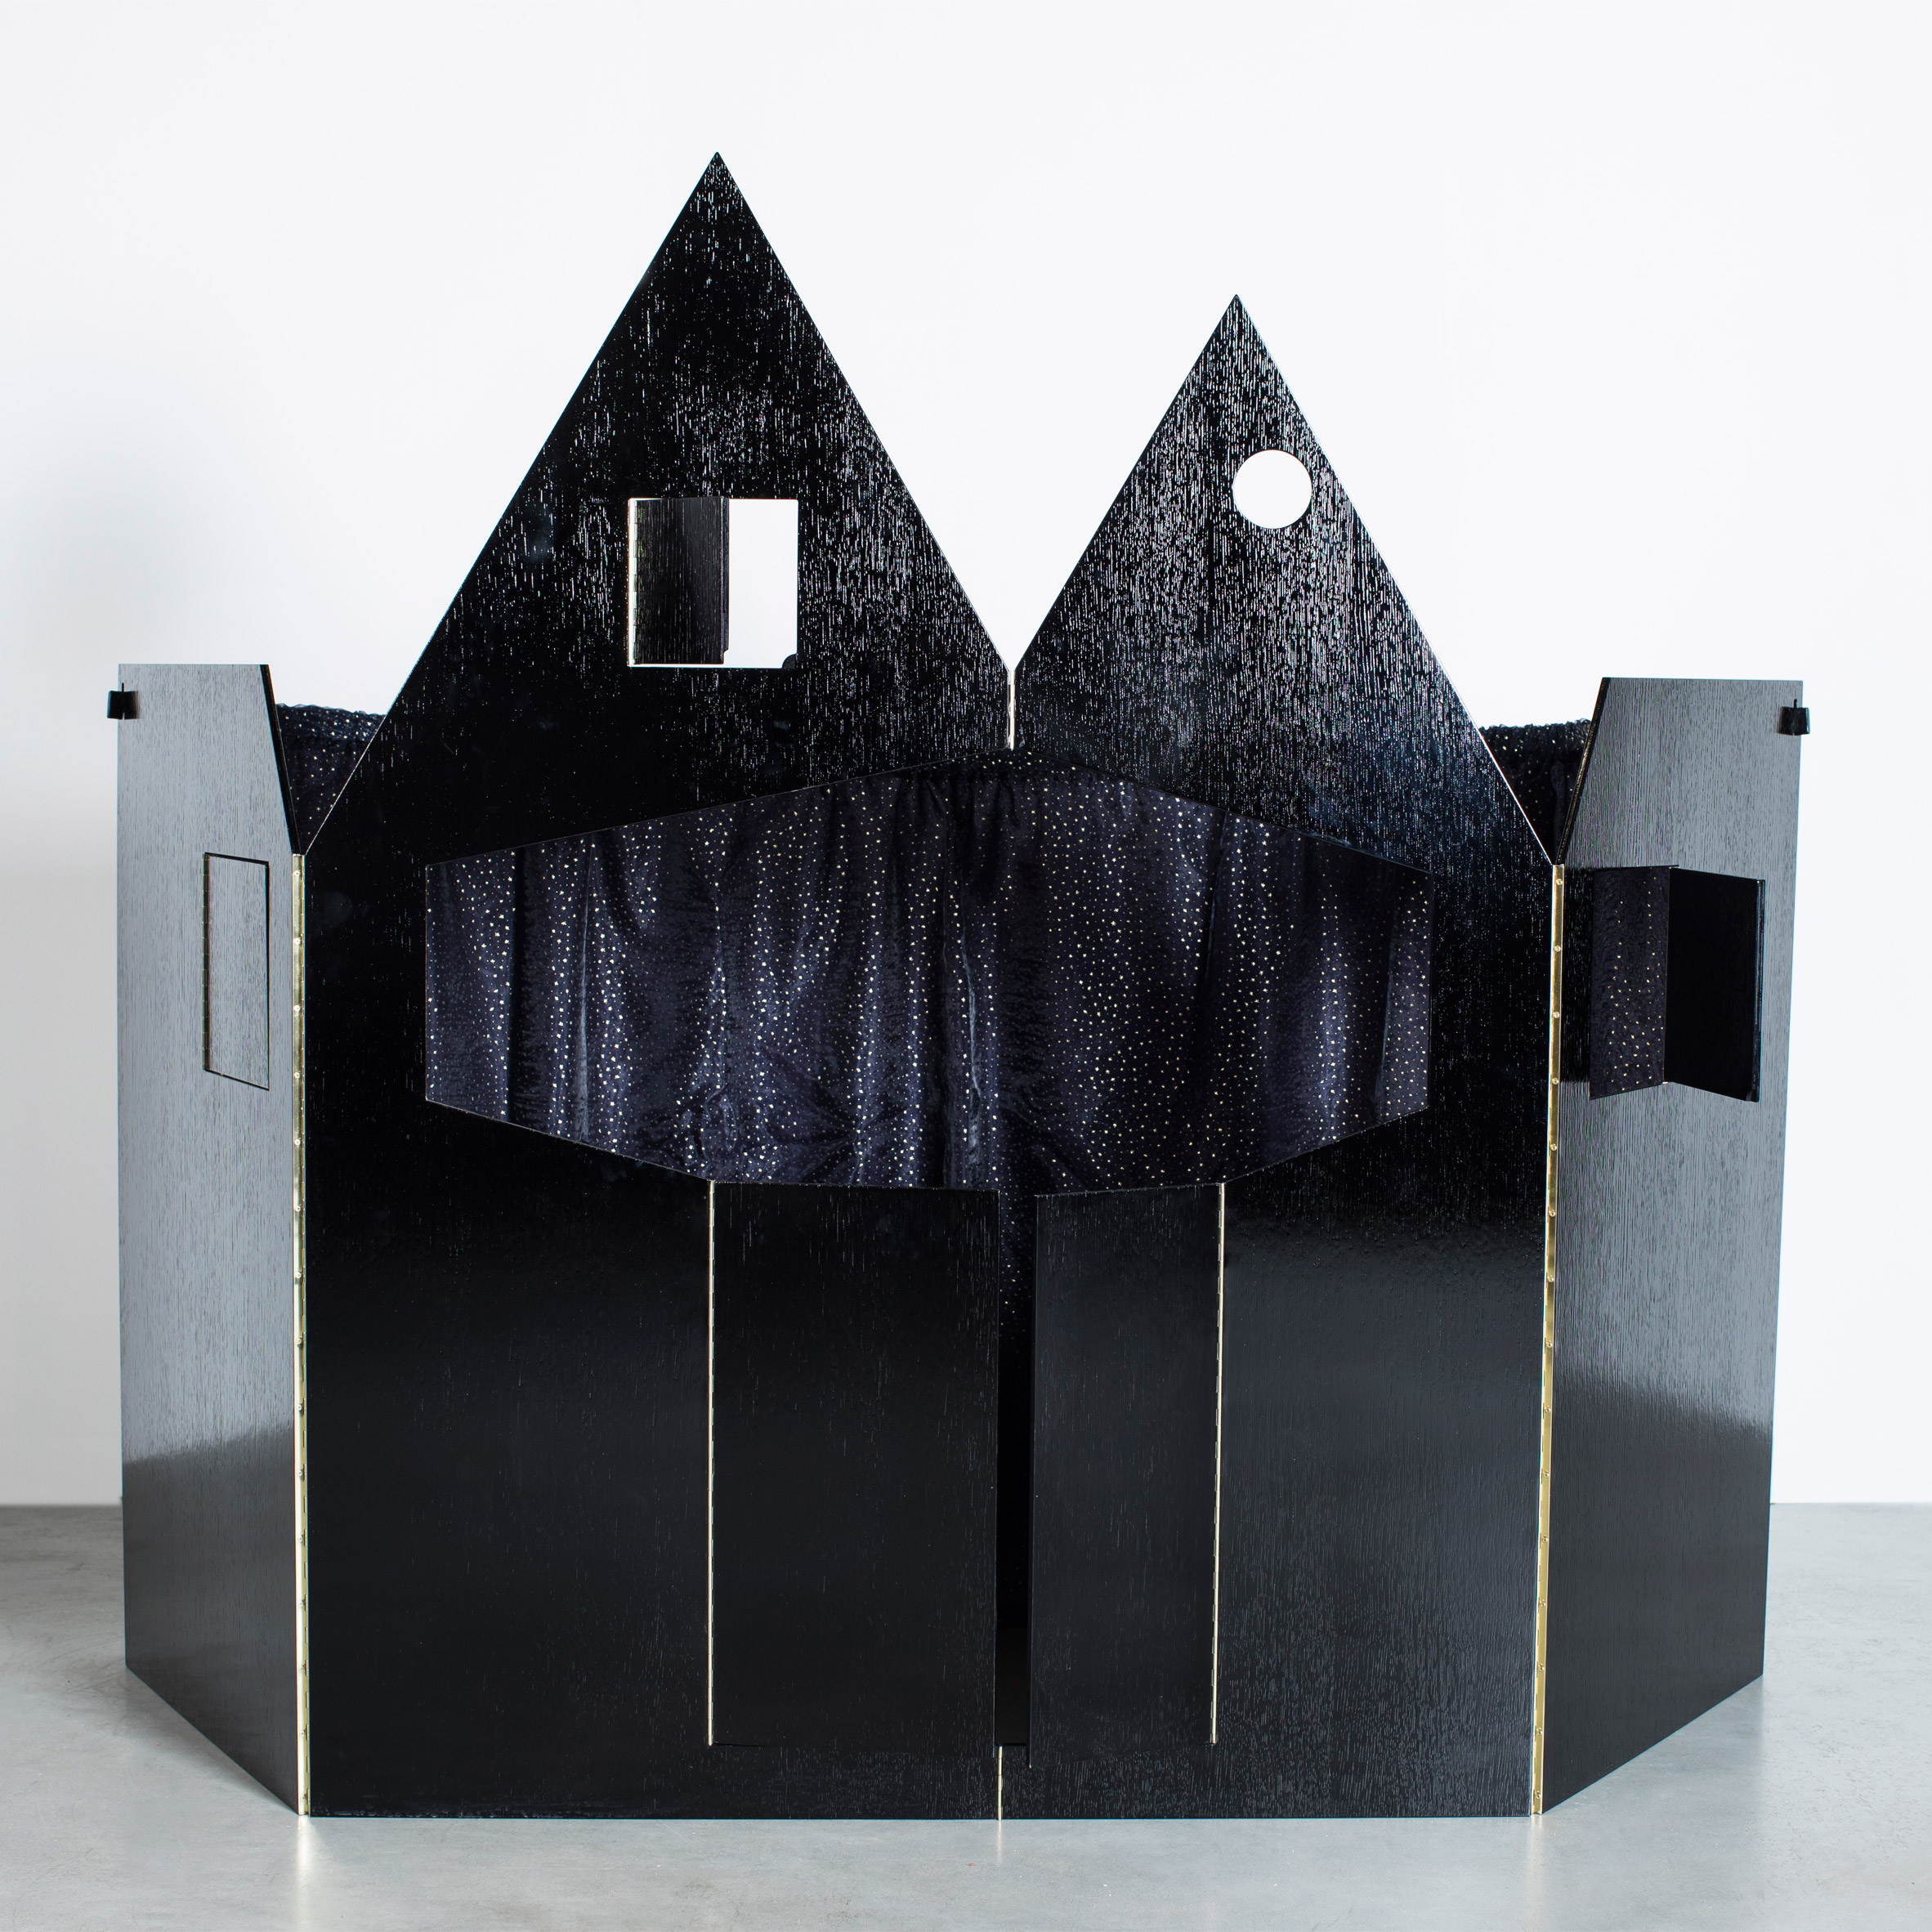 Robbrecht en Daem designs sombre-coloured puppet theatre influenced by fairytale castles